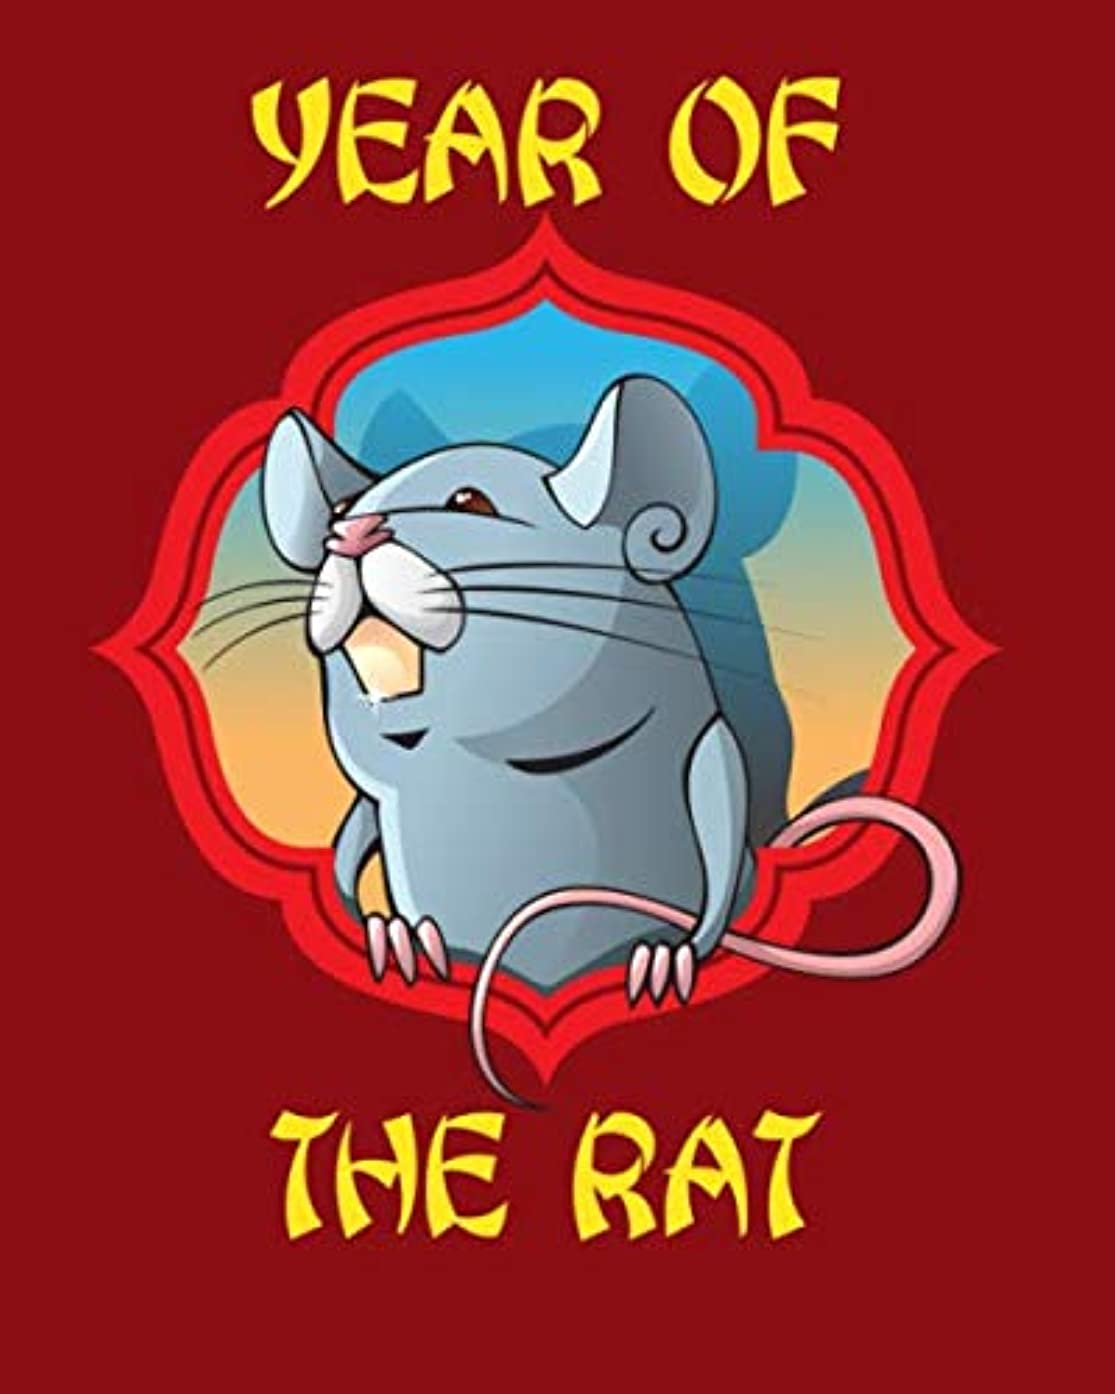 Year Of The Rat: Chinese Language New Year 2020 Year Of The Rat Daily Planner Organizer